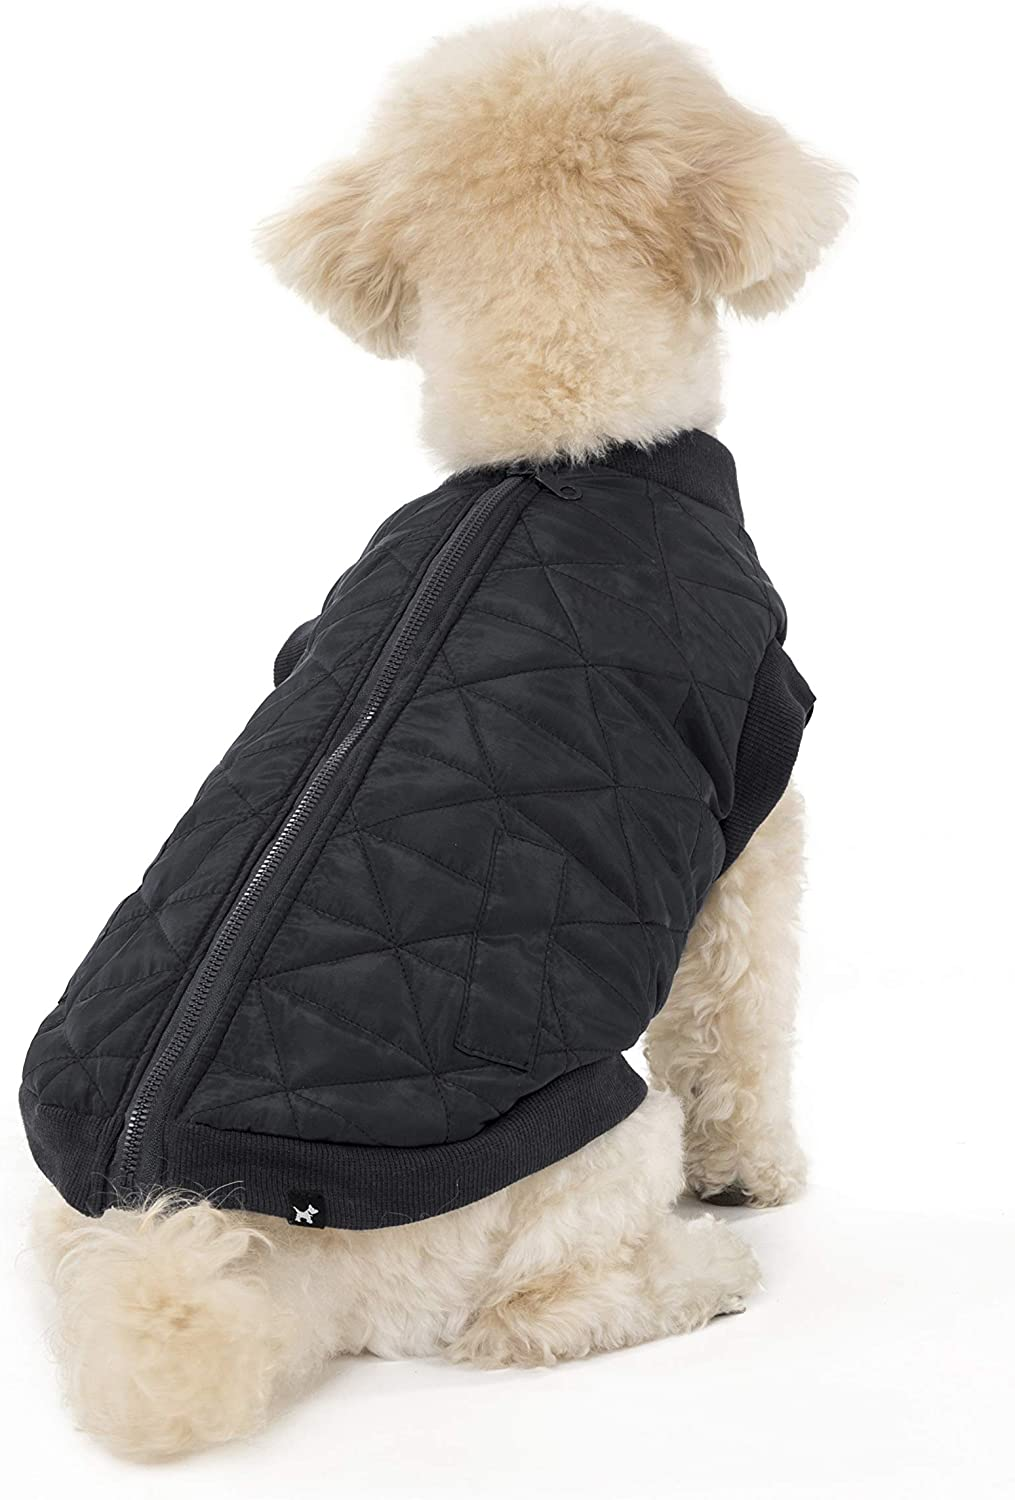 Hotel Doggy Quilted Zip Front Vest Dog Jacket  Black Polyester Dog Coat Small